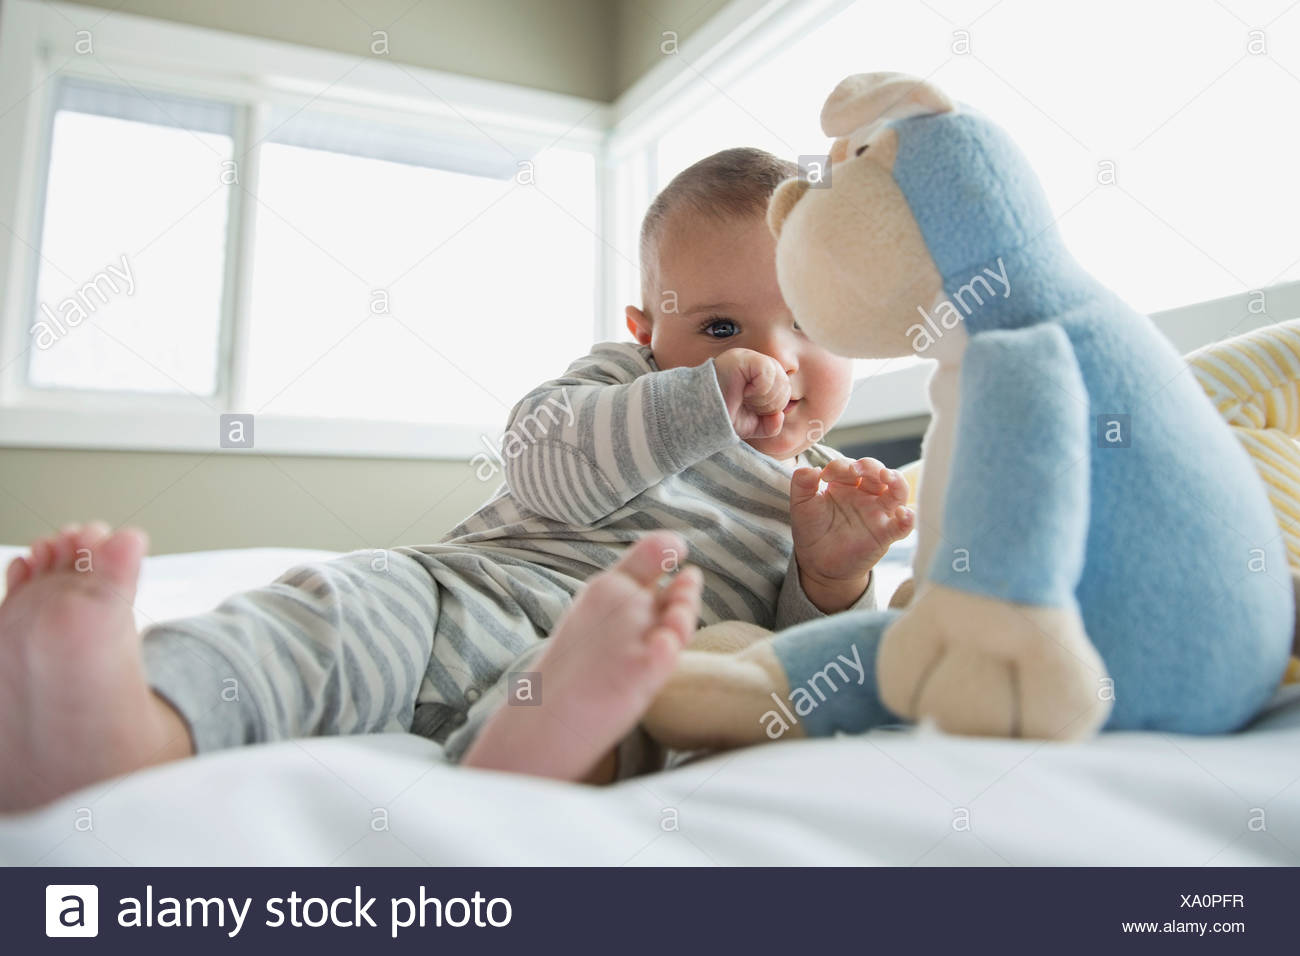 Bébé avec animal en peluche sur le lit Photo Stock